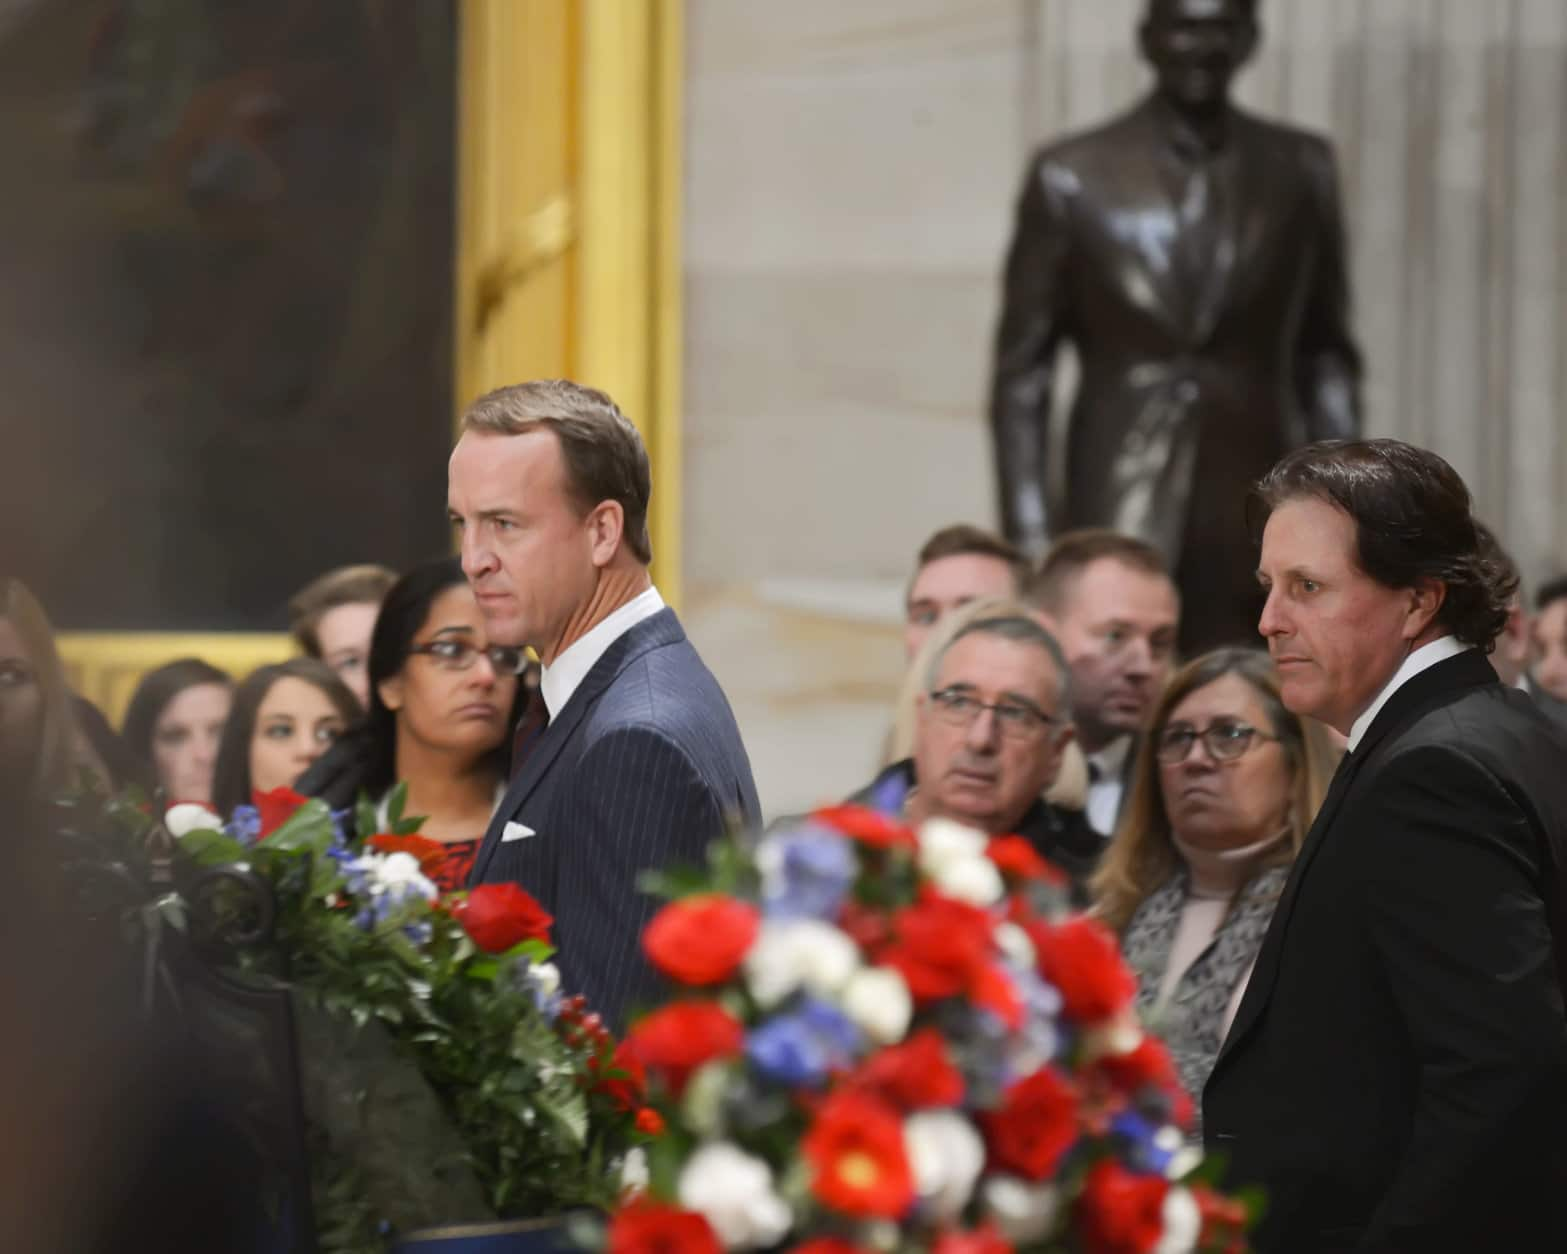 "Retired quarterback Peyton Manning and golfer Phil Mickelson attend the lying-in-state for the late President George H.W. Bush on Dec. 4, 2018. (Courtesy Shannon Finney/<a href=""https://www.shannonfinneyphotography.com/index"" target=""_blank"" rel=""noopener noreferrer"">shannonfinneyphotography.com</a>)"